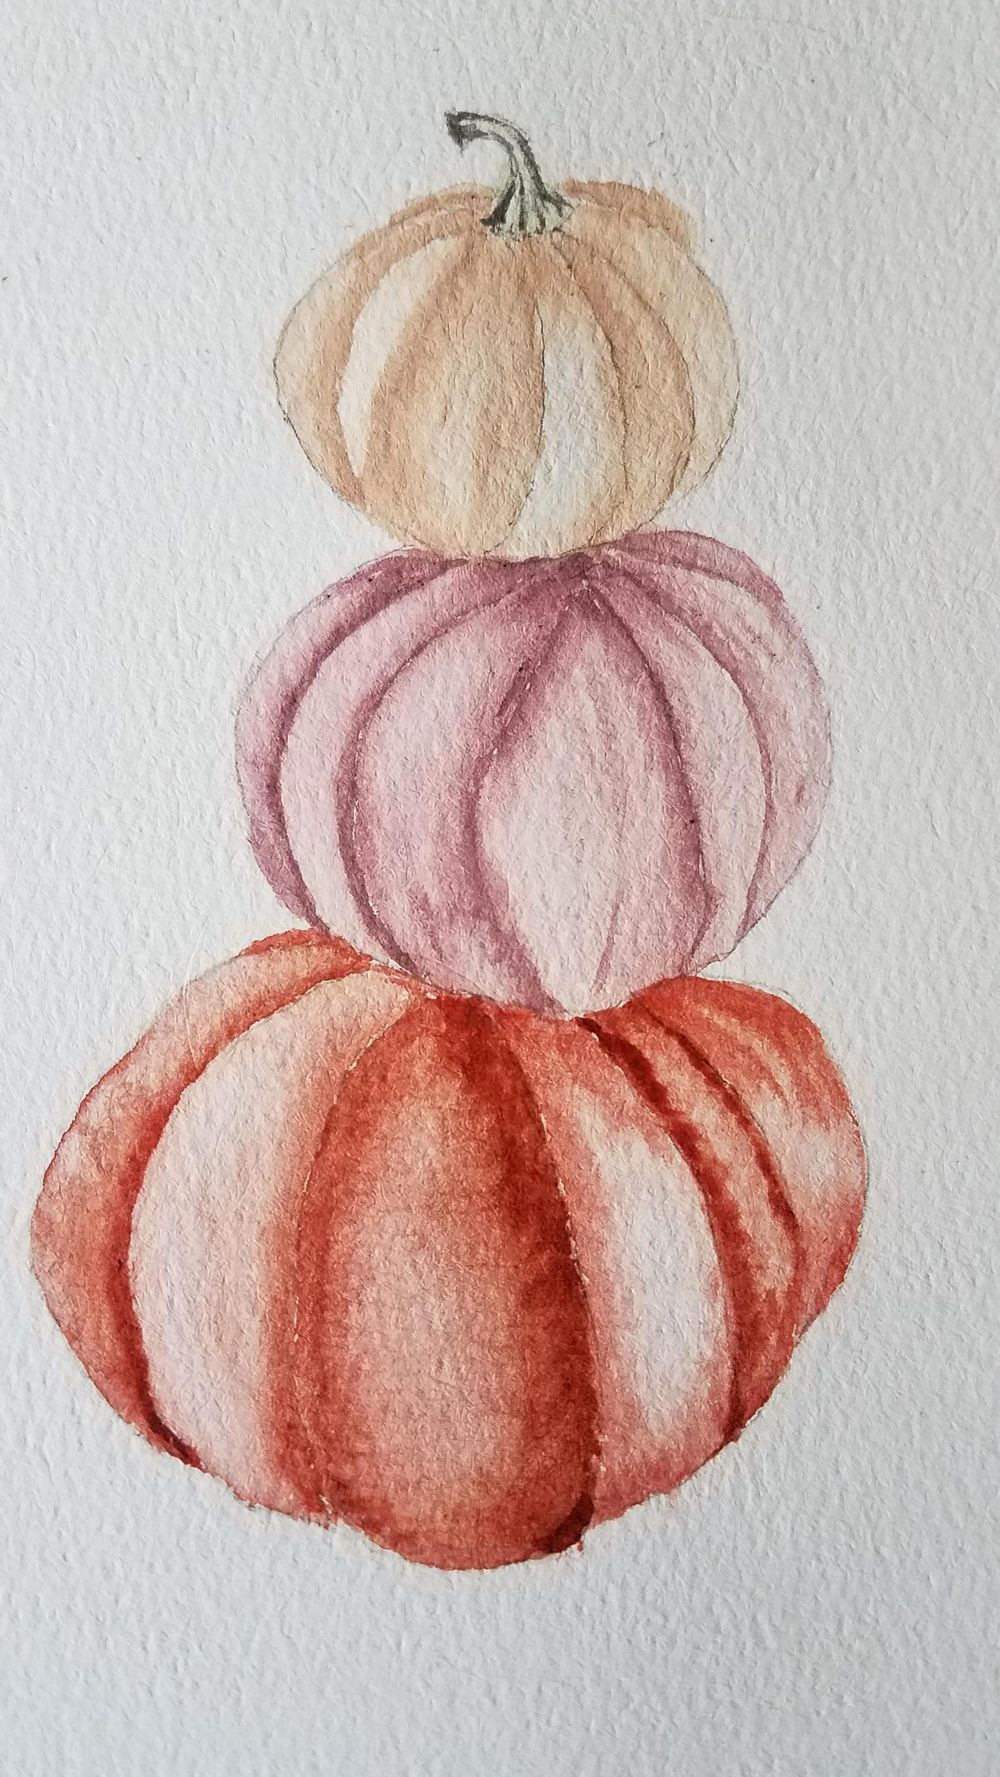 pumpkintower - image 1 - student project